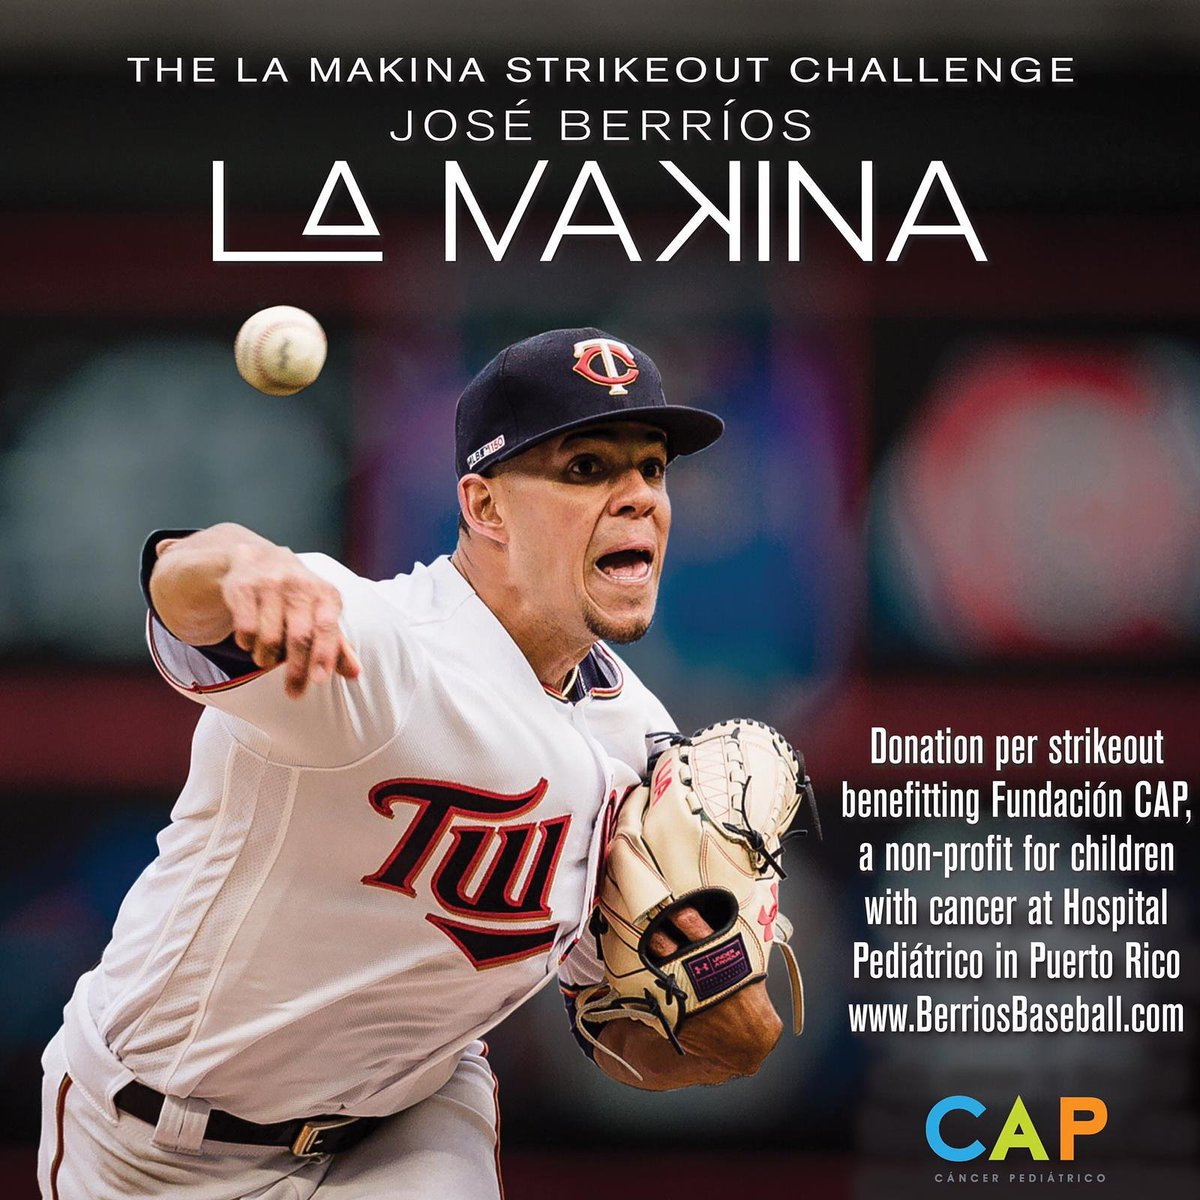 A child is diagnosed w/cancer worldwide every three minutes. September is National Childhood Cancer Awareness Month. Please join me in making a donation berriosbaseball.com to benefit @fundacioncap 🇵🇷. Last month of my #LaMaKina strikeout challenge, let's finish strong! 💪🏾🙏🏾